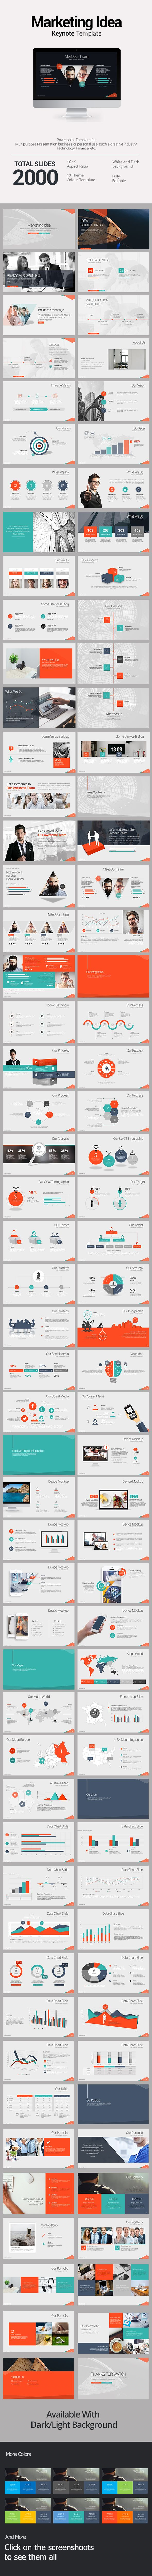 Marketing Idea Keynote Templates - #Keynote Templates #Presentation #Templates Download here: https://graphicriver.net/item/marketing-idea-keynote-templates/19604207?ref=alena994